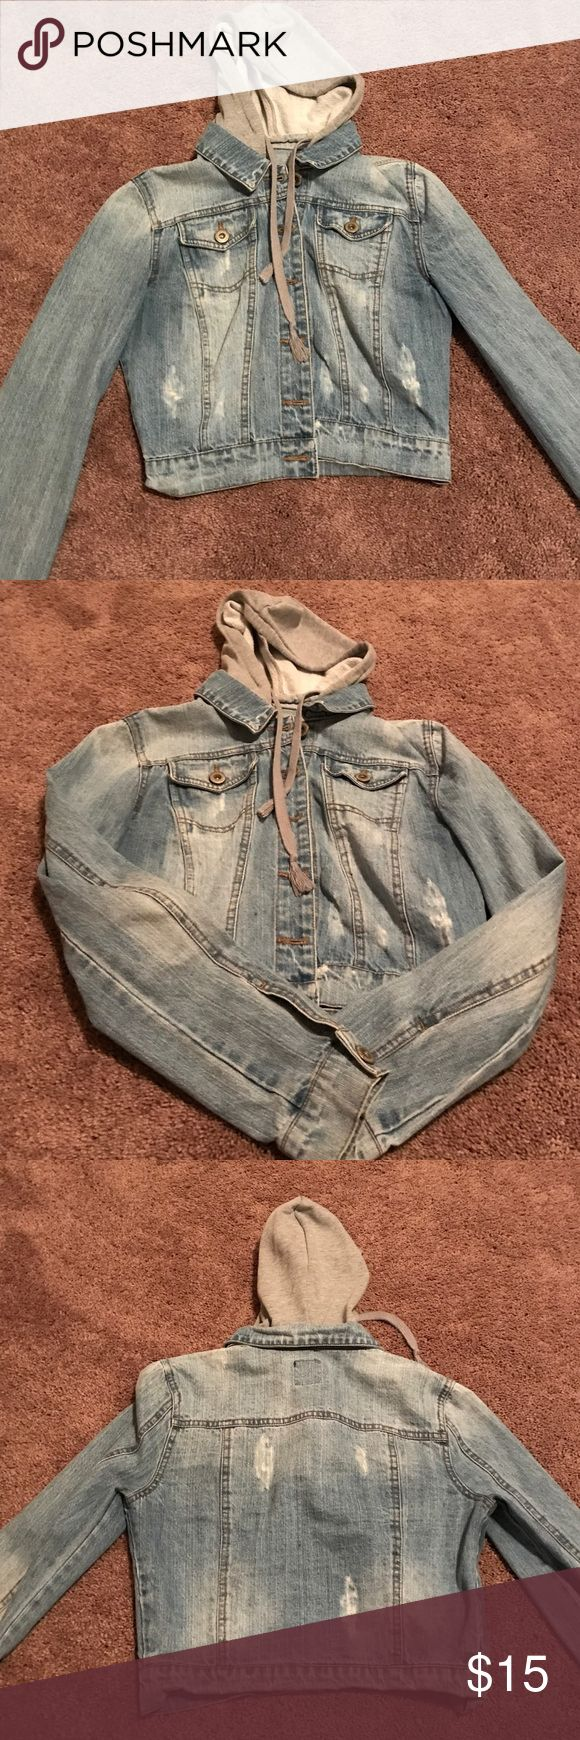 Cute Hooded jean jacket. Light distressed denim jacket with a Cotten hood. Very comfortable. Highway Jeans Jackets & Coats Jean Jackets